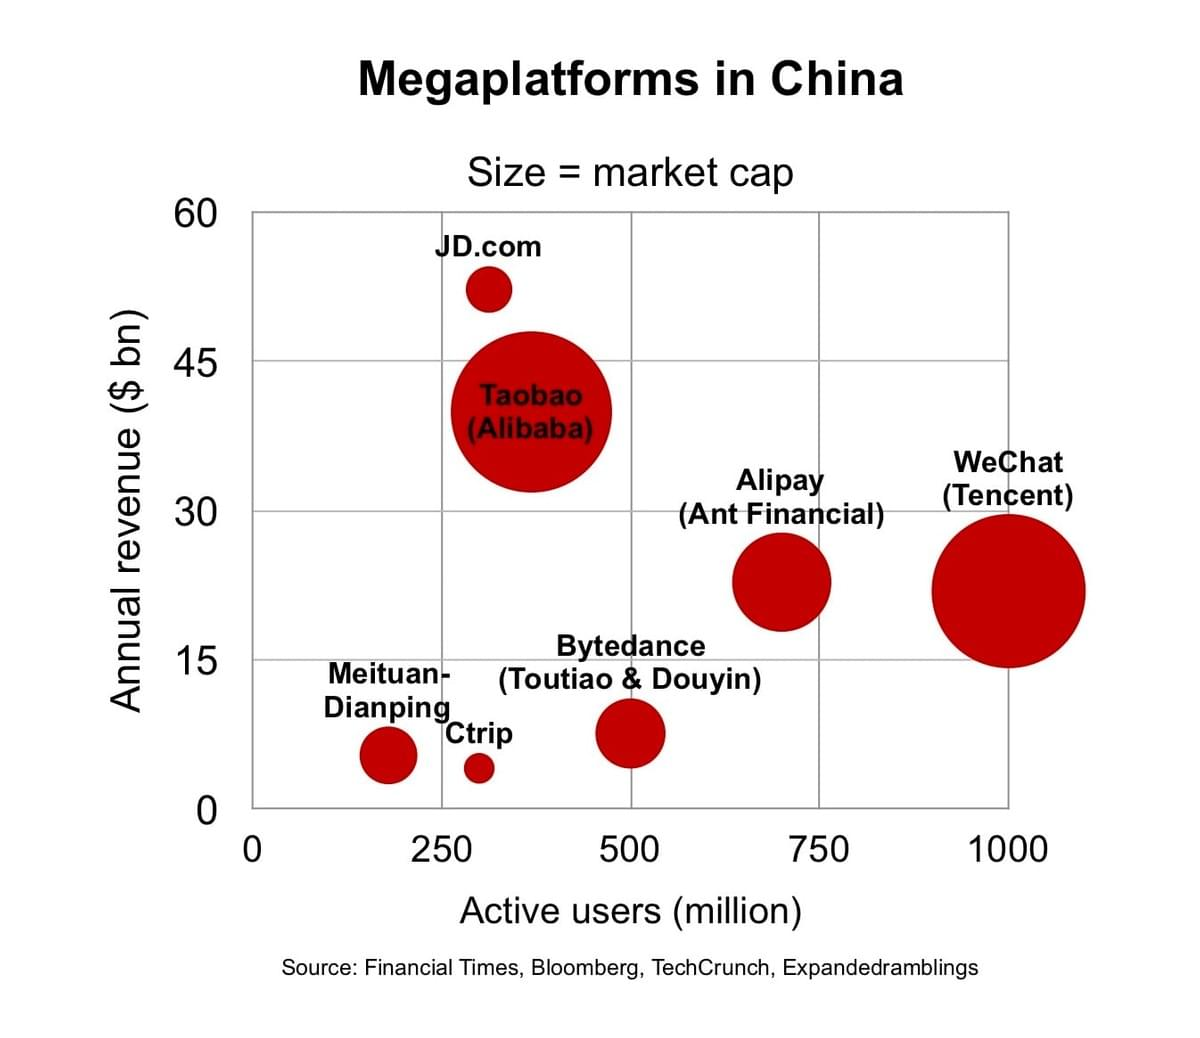 Largest Platforms in China